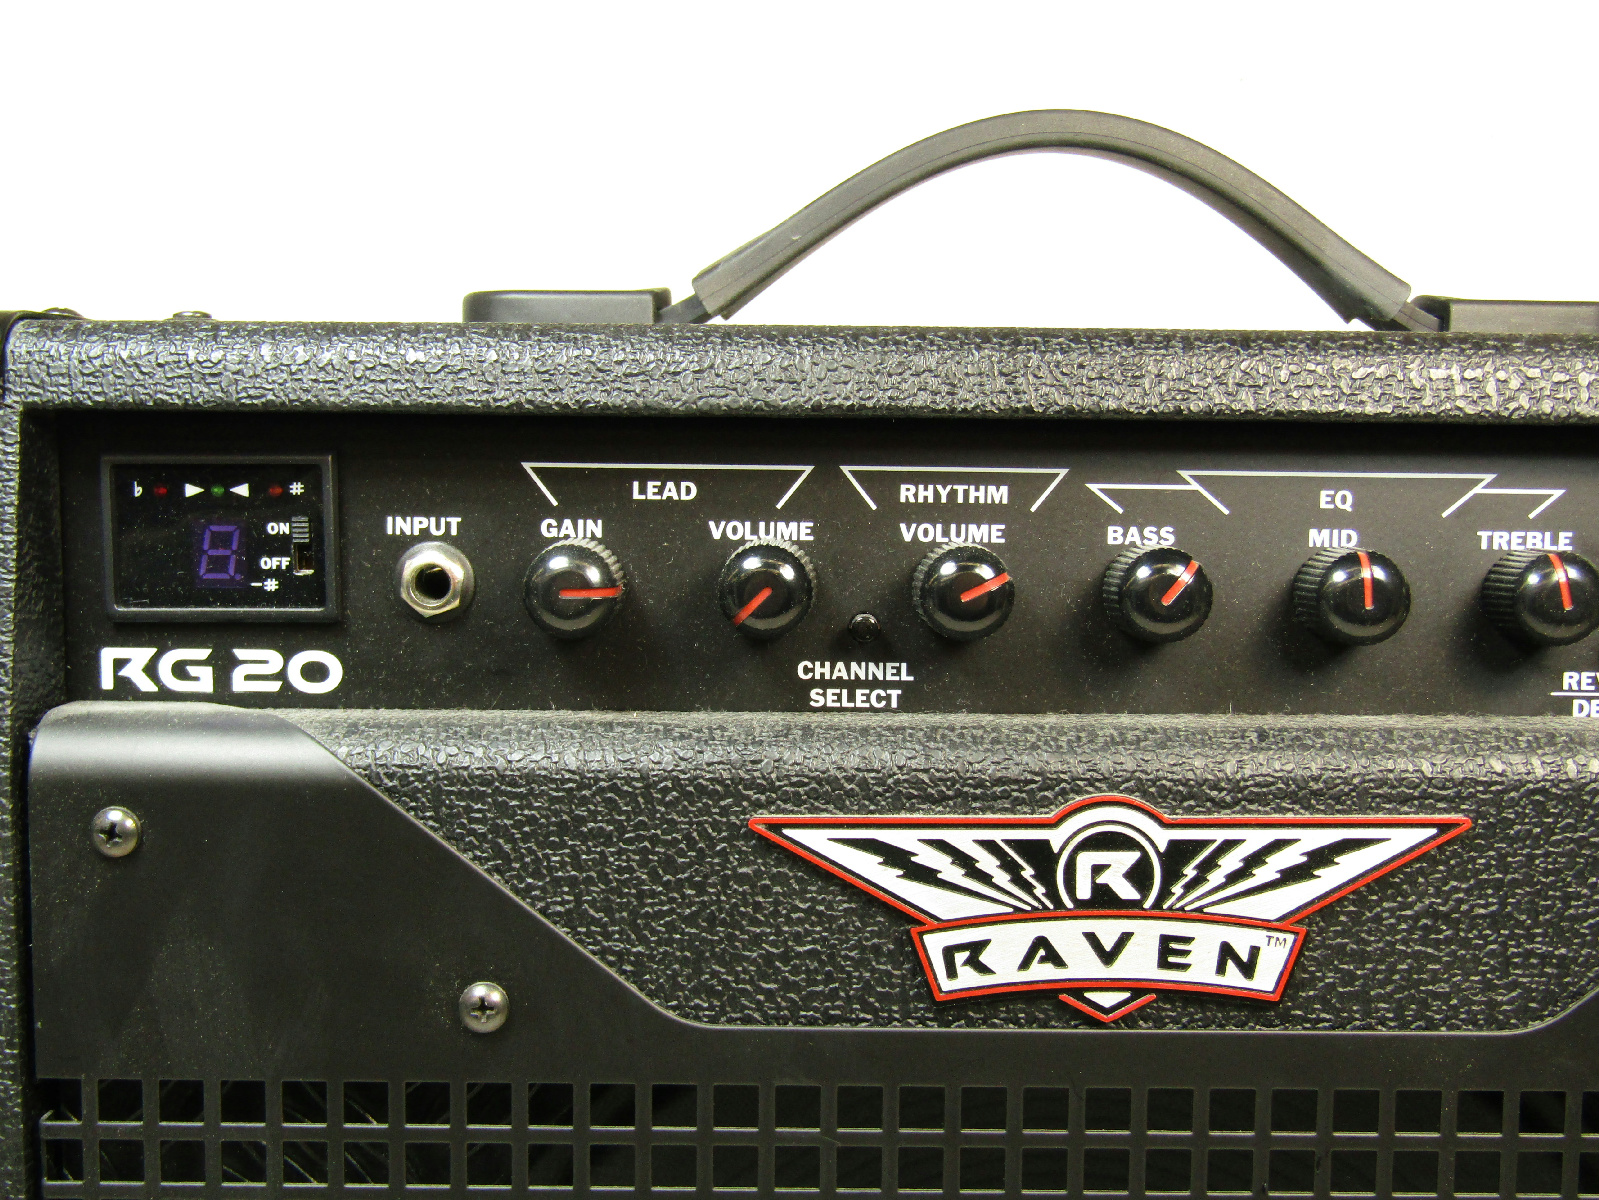 raven rg20 black 20 watt 6 ohm electric guitar combo amplifier w cords ebay. Black Bedroom Furniture Sets. Home Design Ideas